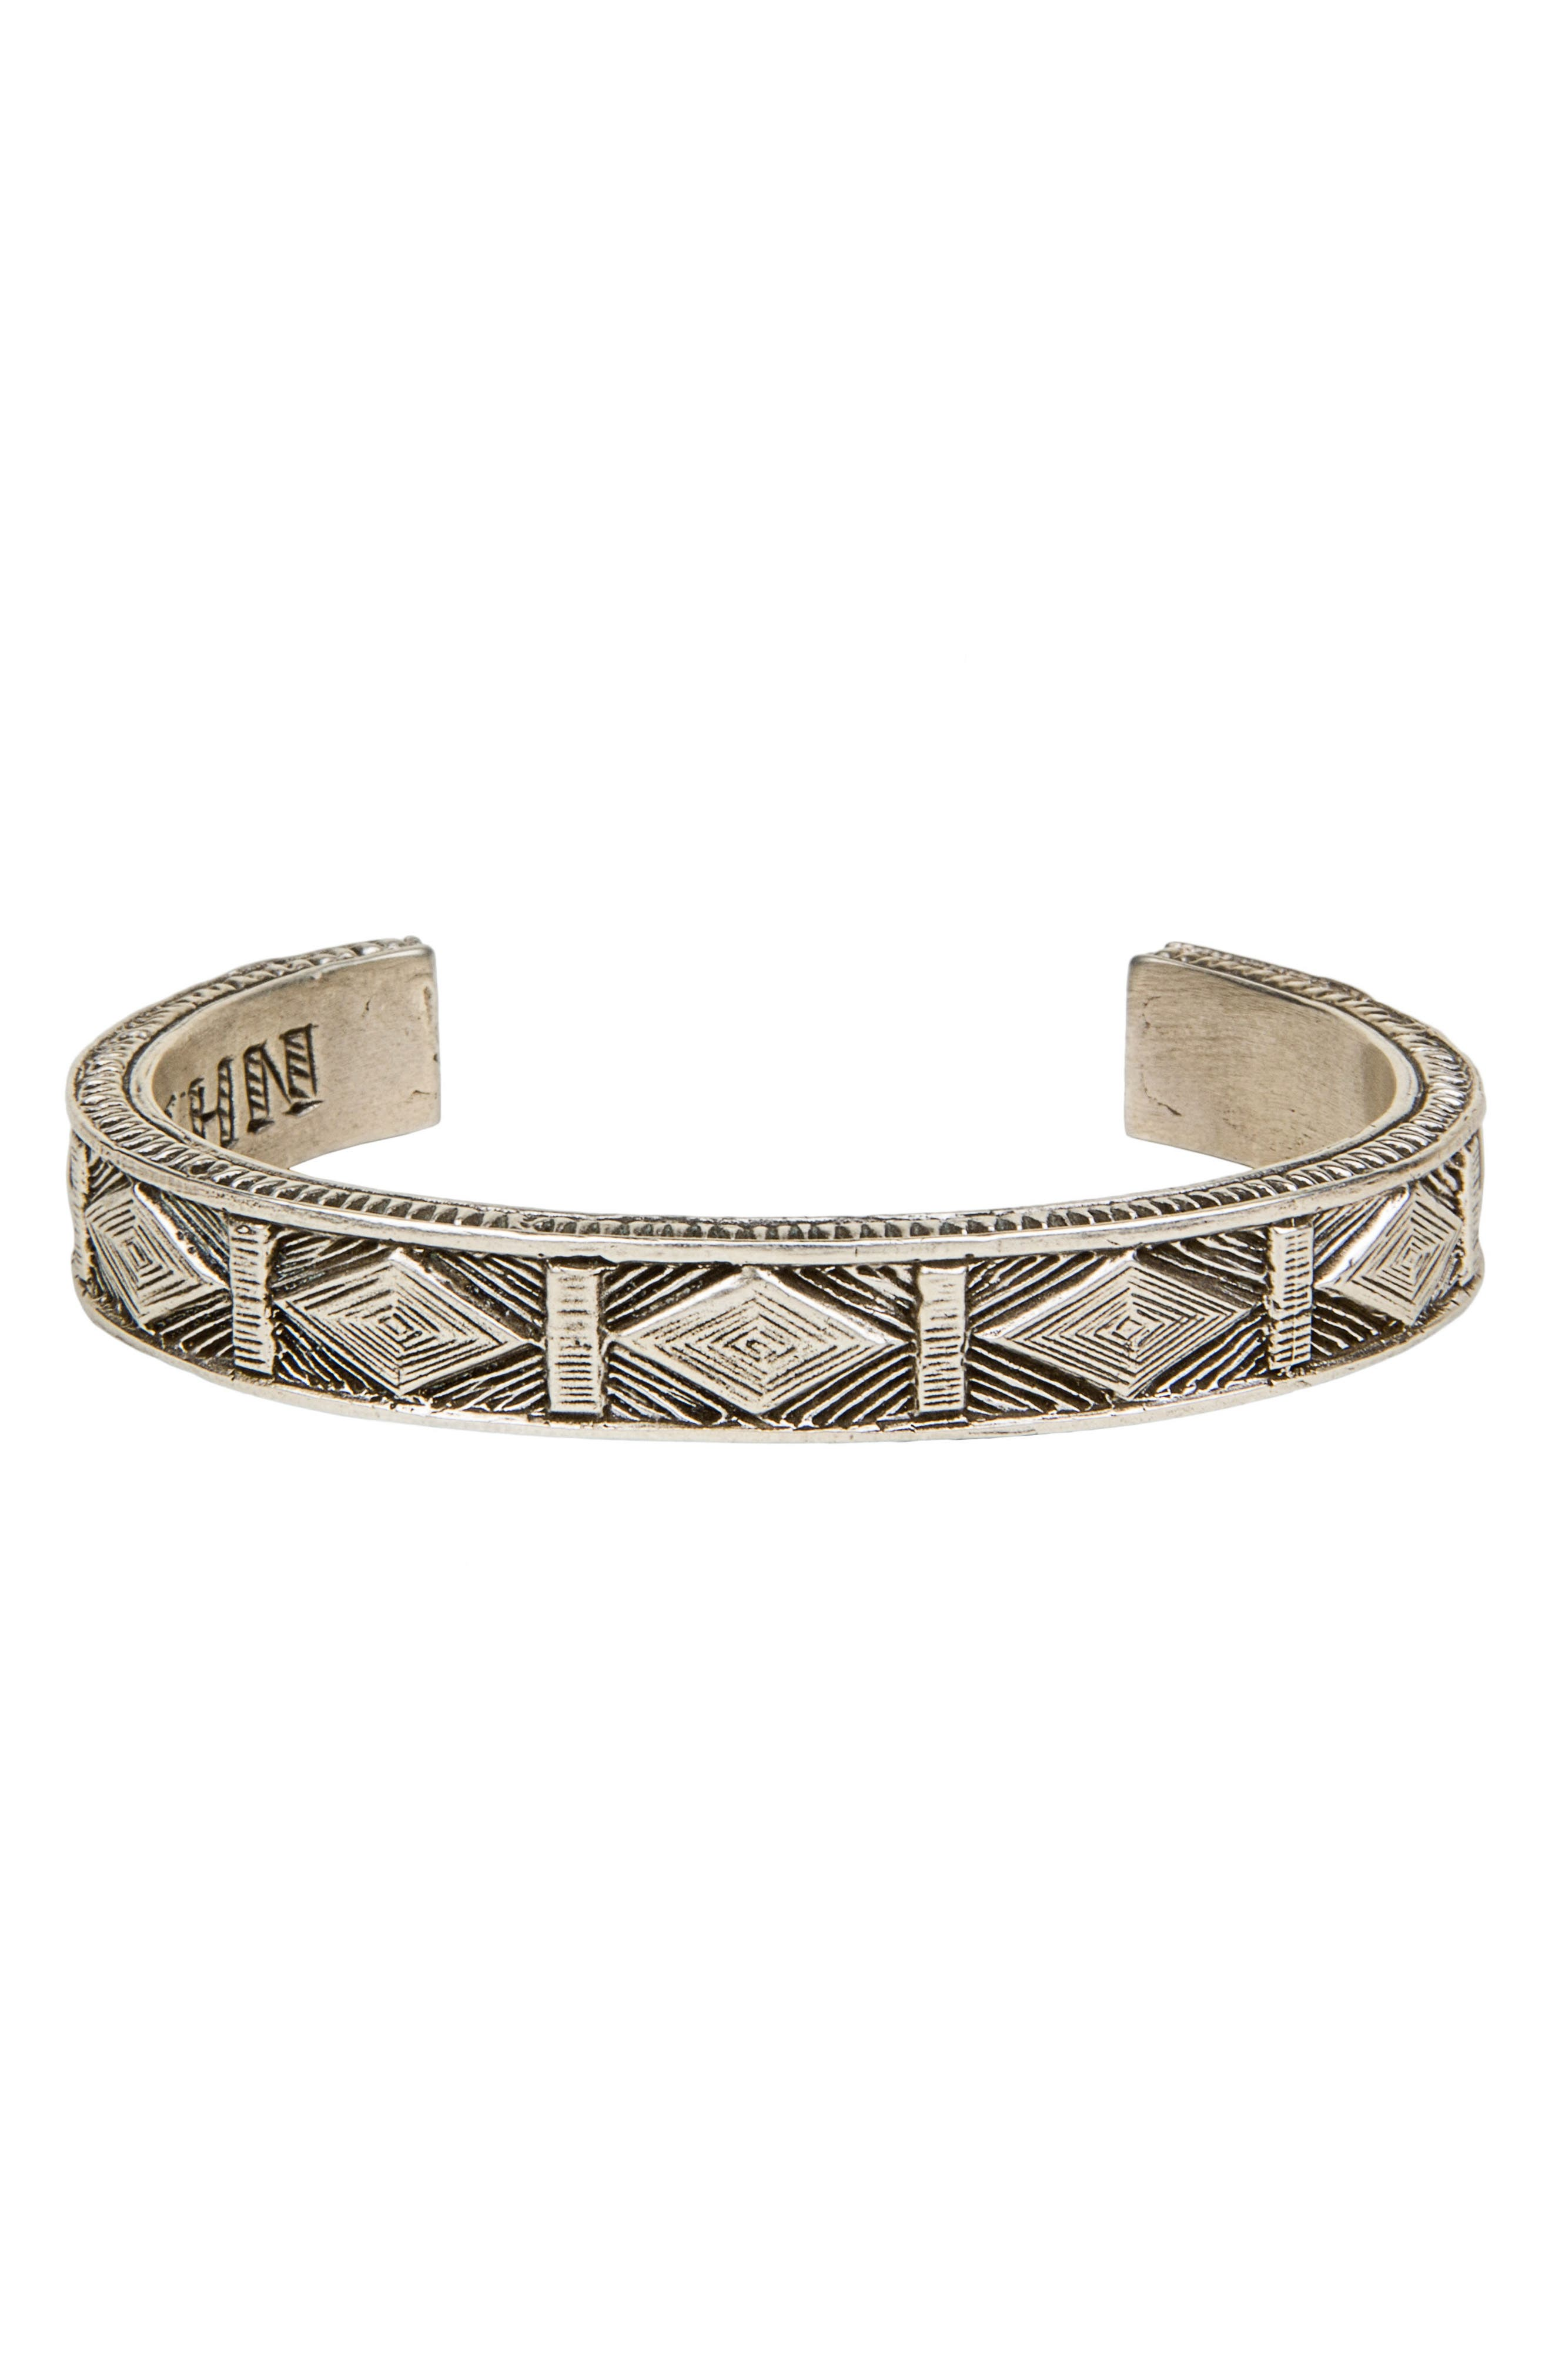 Alternate Image 1 Selected - Lewis Henry Nicholas Hiapo Sterling Silver Cuff